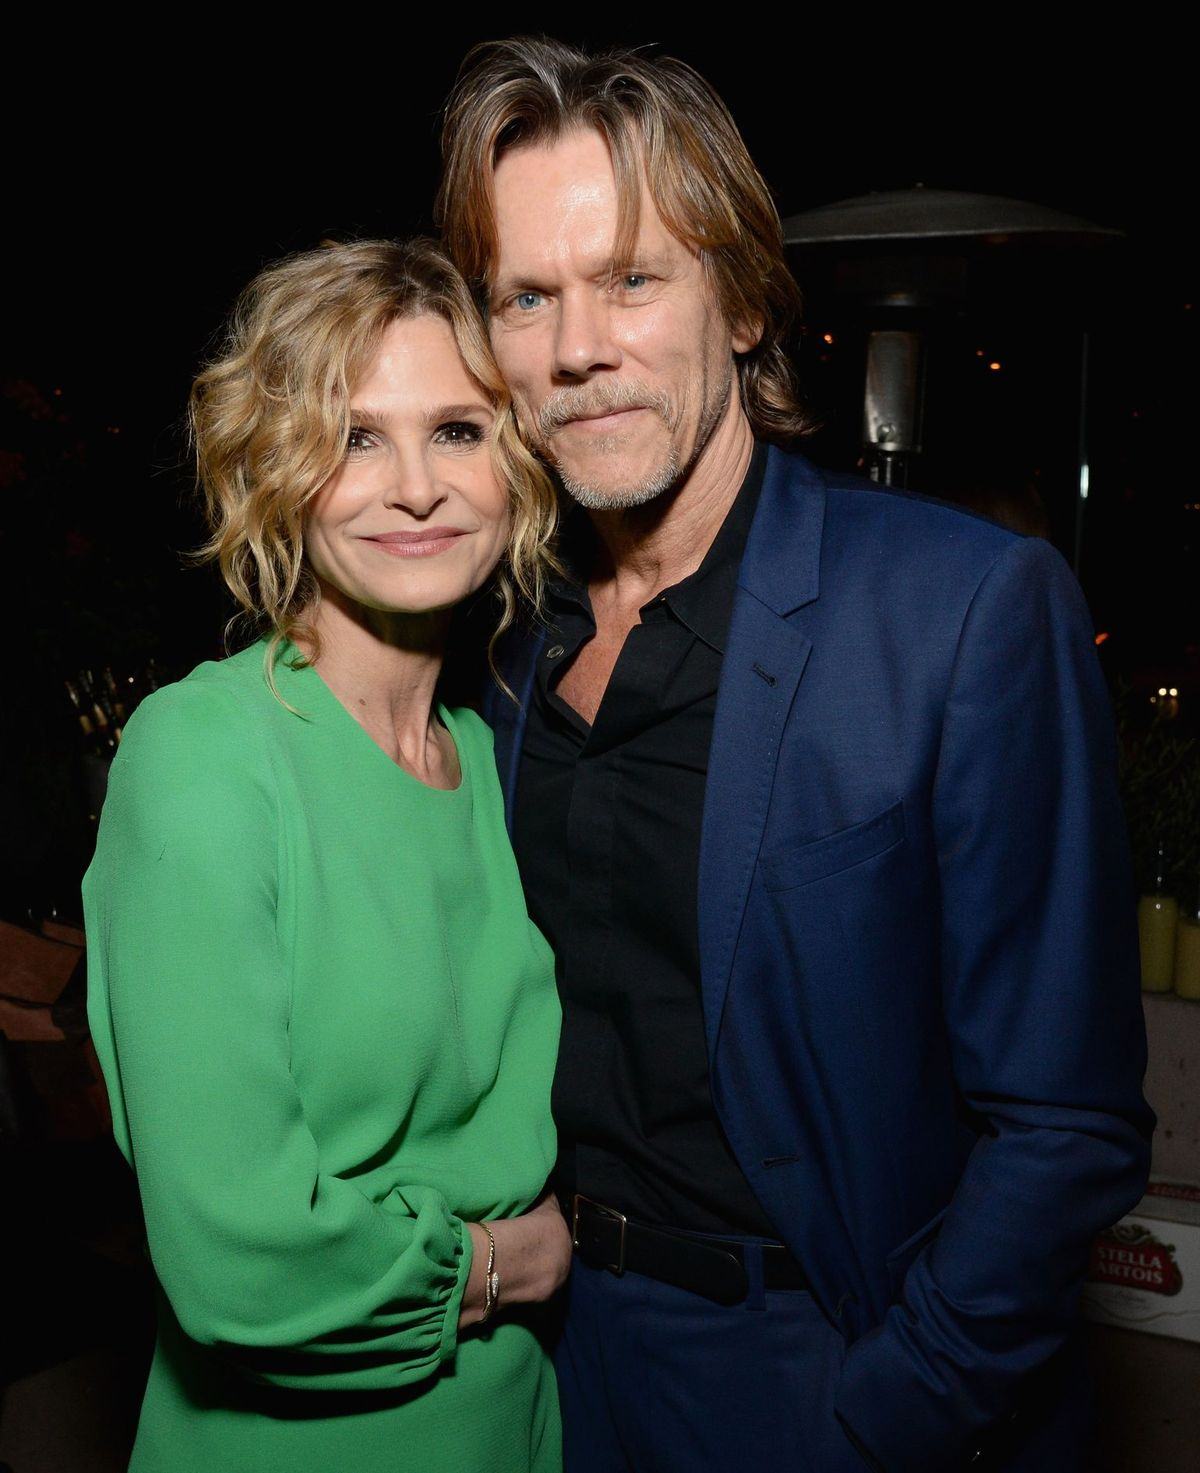 Kyra Sedgwick and Kevin Bacon at Moet Celebrates The 75th Anniversary of The Golden Globes Award Season on November 15, 2017, in West Hollywood, California | Photo:Michael Kovac/Getty Images